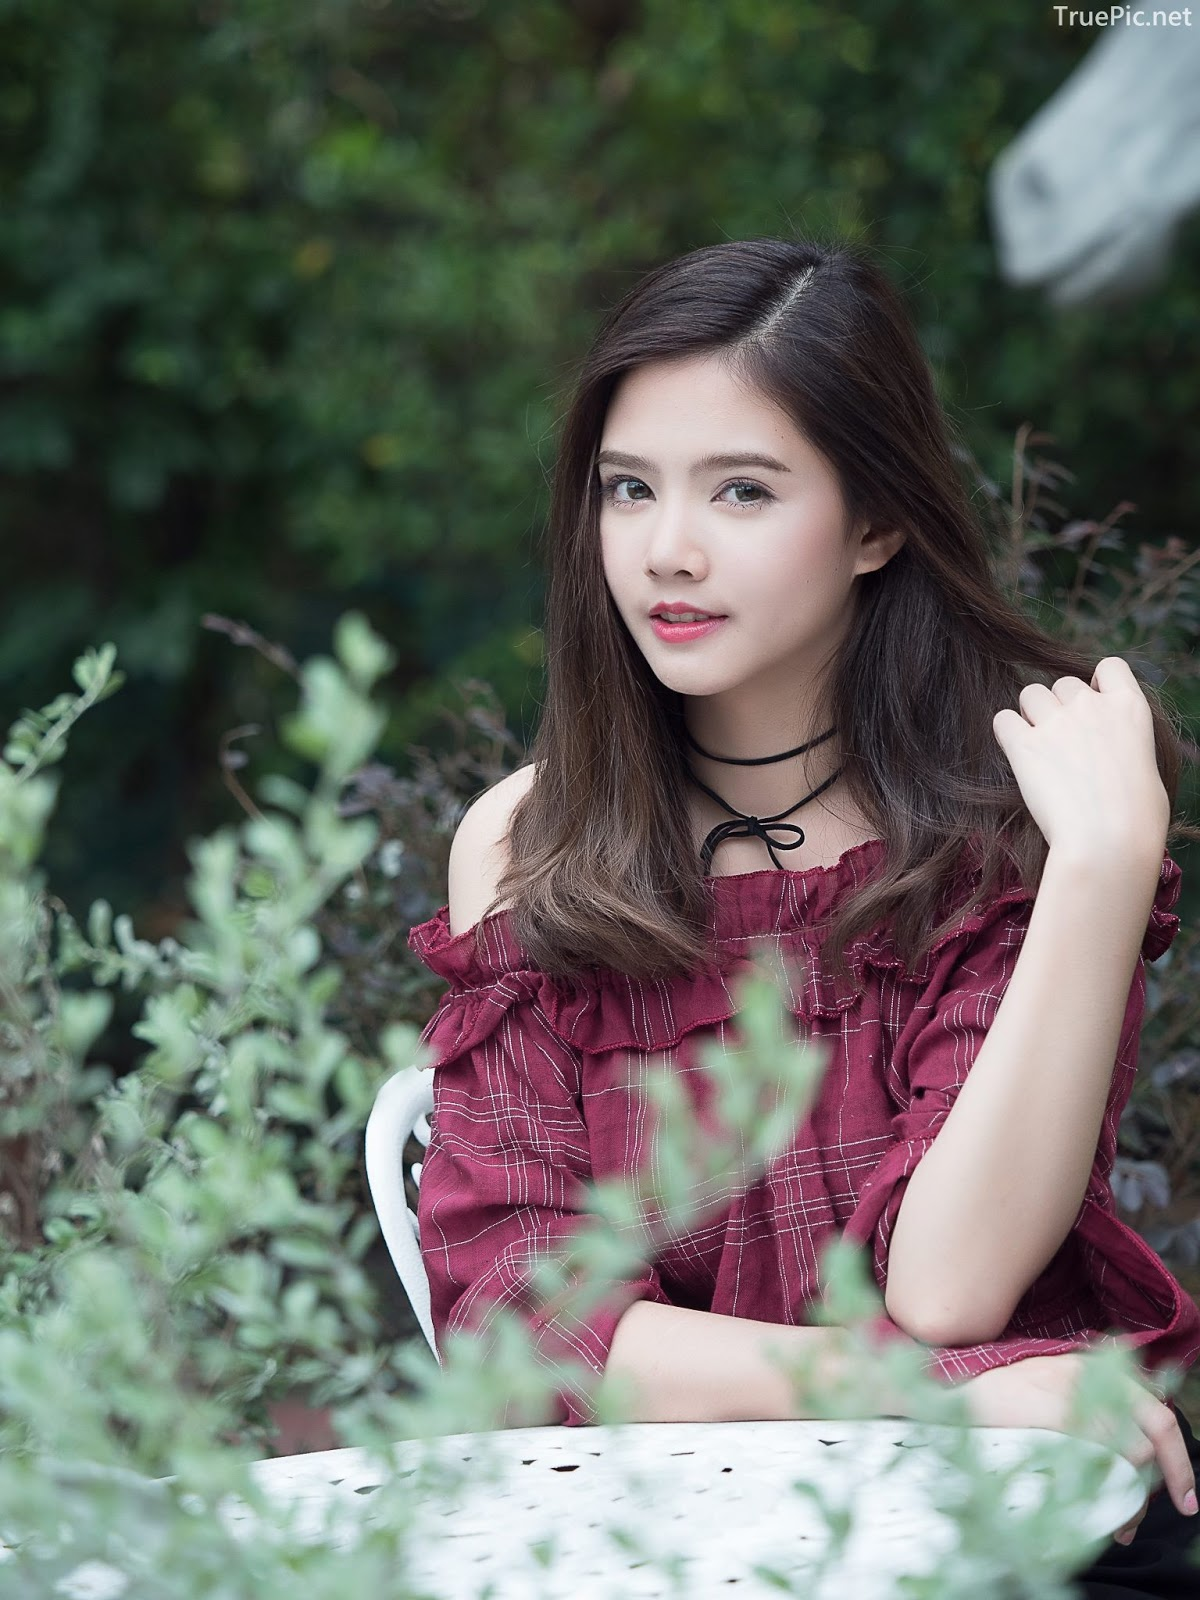 Thailand pretty girl Aintoaon Nantawong – The most beautiful flower in the garden - Picture 9